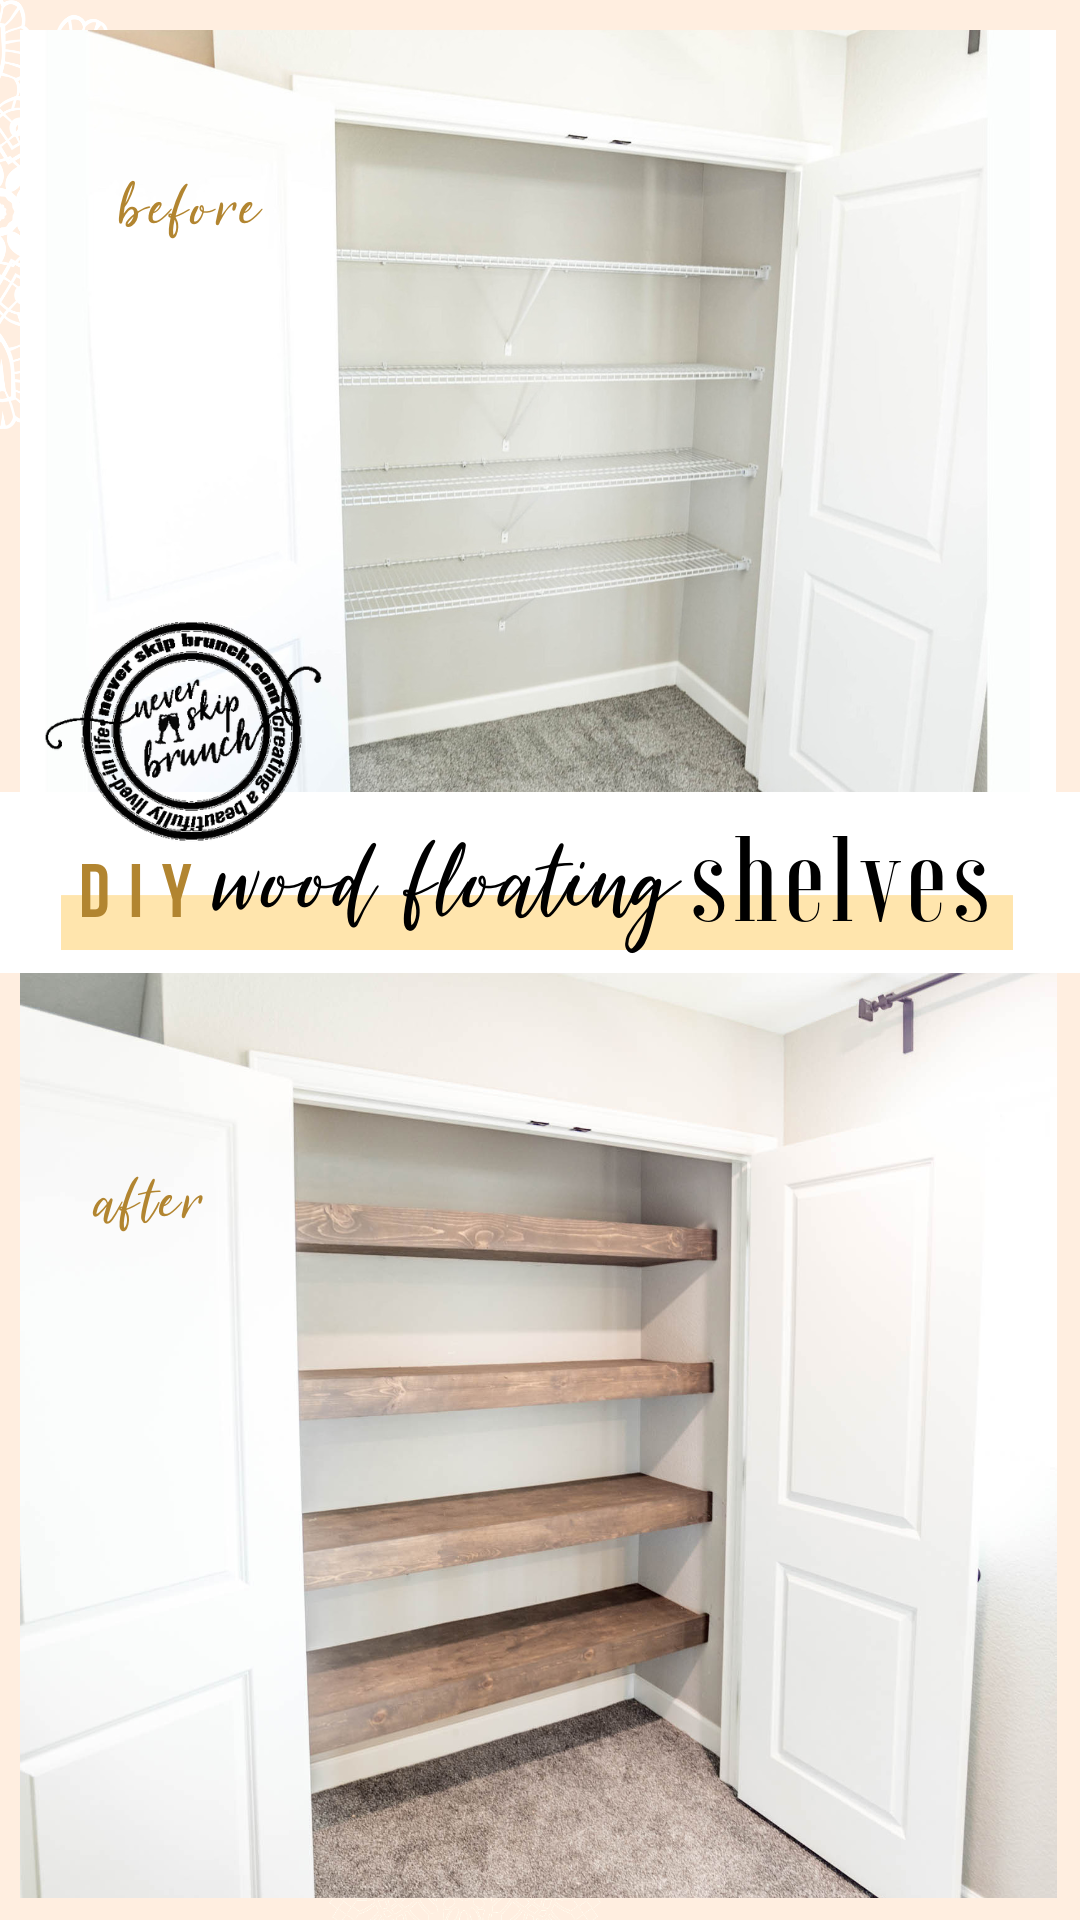 GENIUS! Replace your ugly wire shelves with DIY Wood floating shelves made from framing lumber! | floating shelves diy easy | floating shelves diy closet | wood floating shelves |  Never Skip Brunch by Cara Newhart | #decor #diy #neverskipbrunch